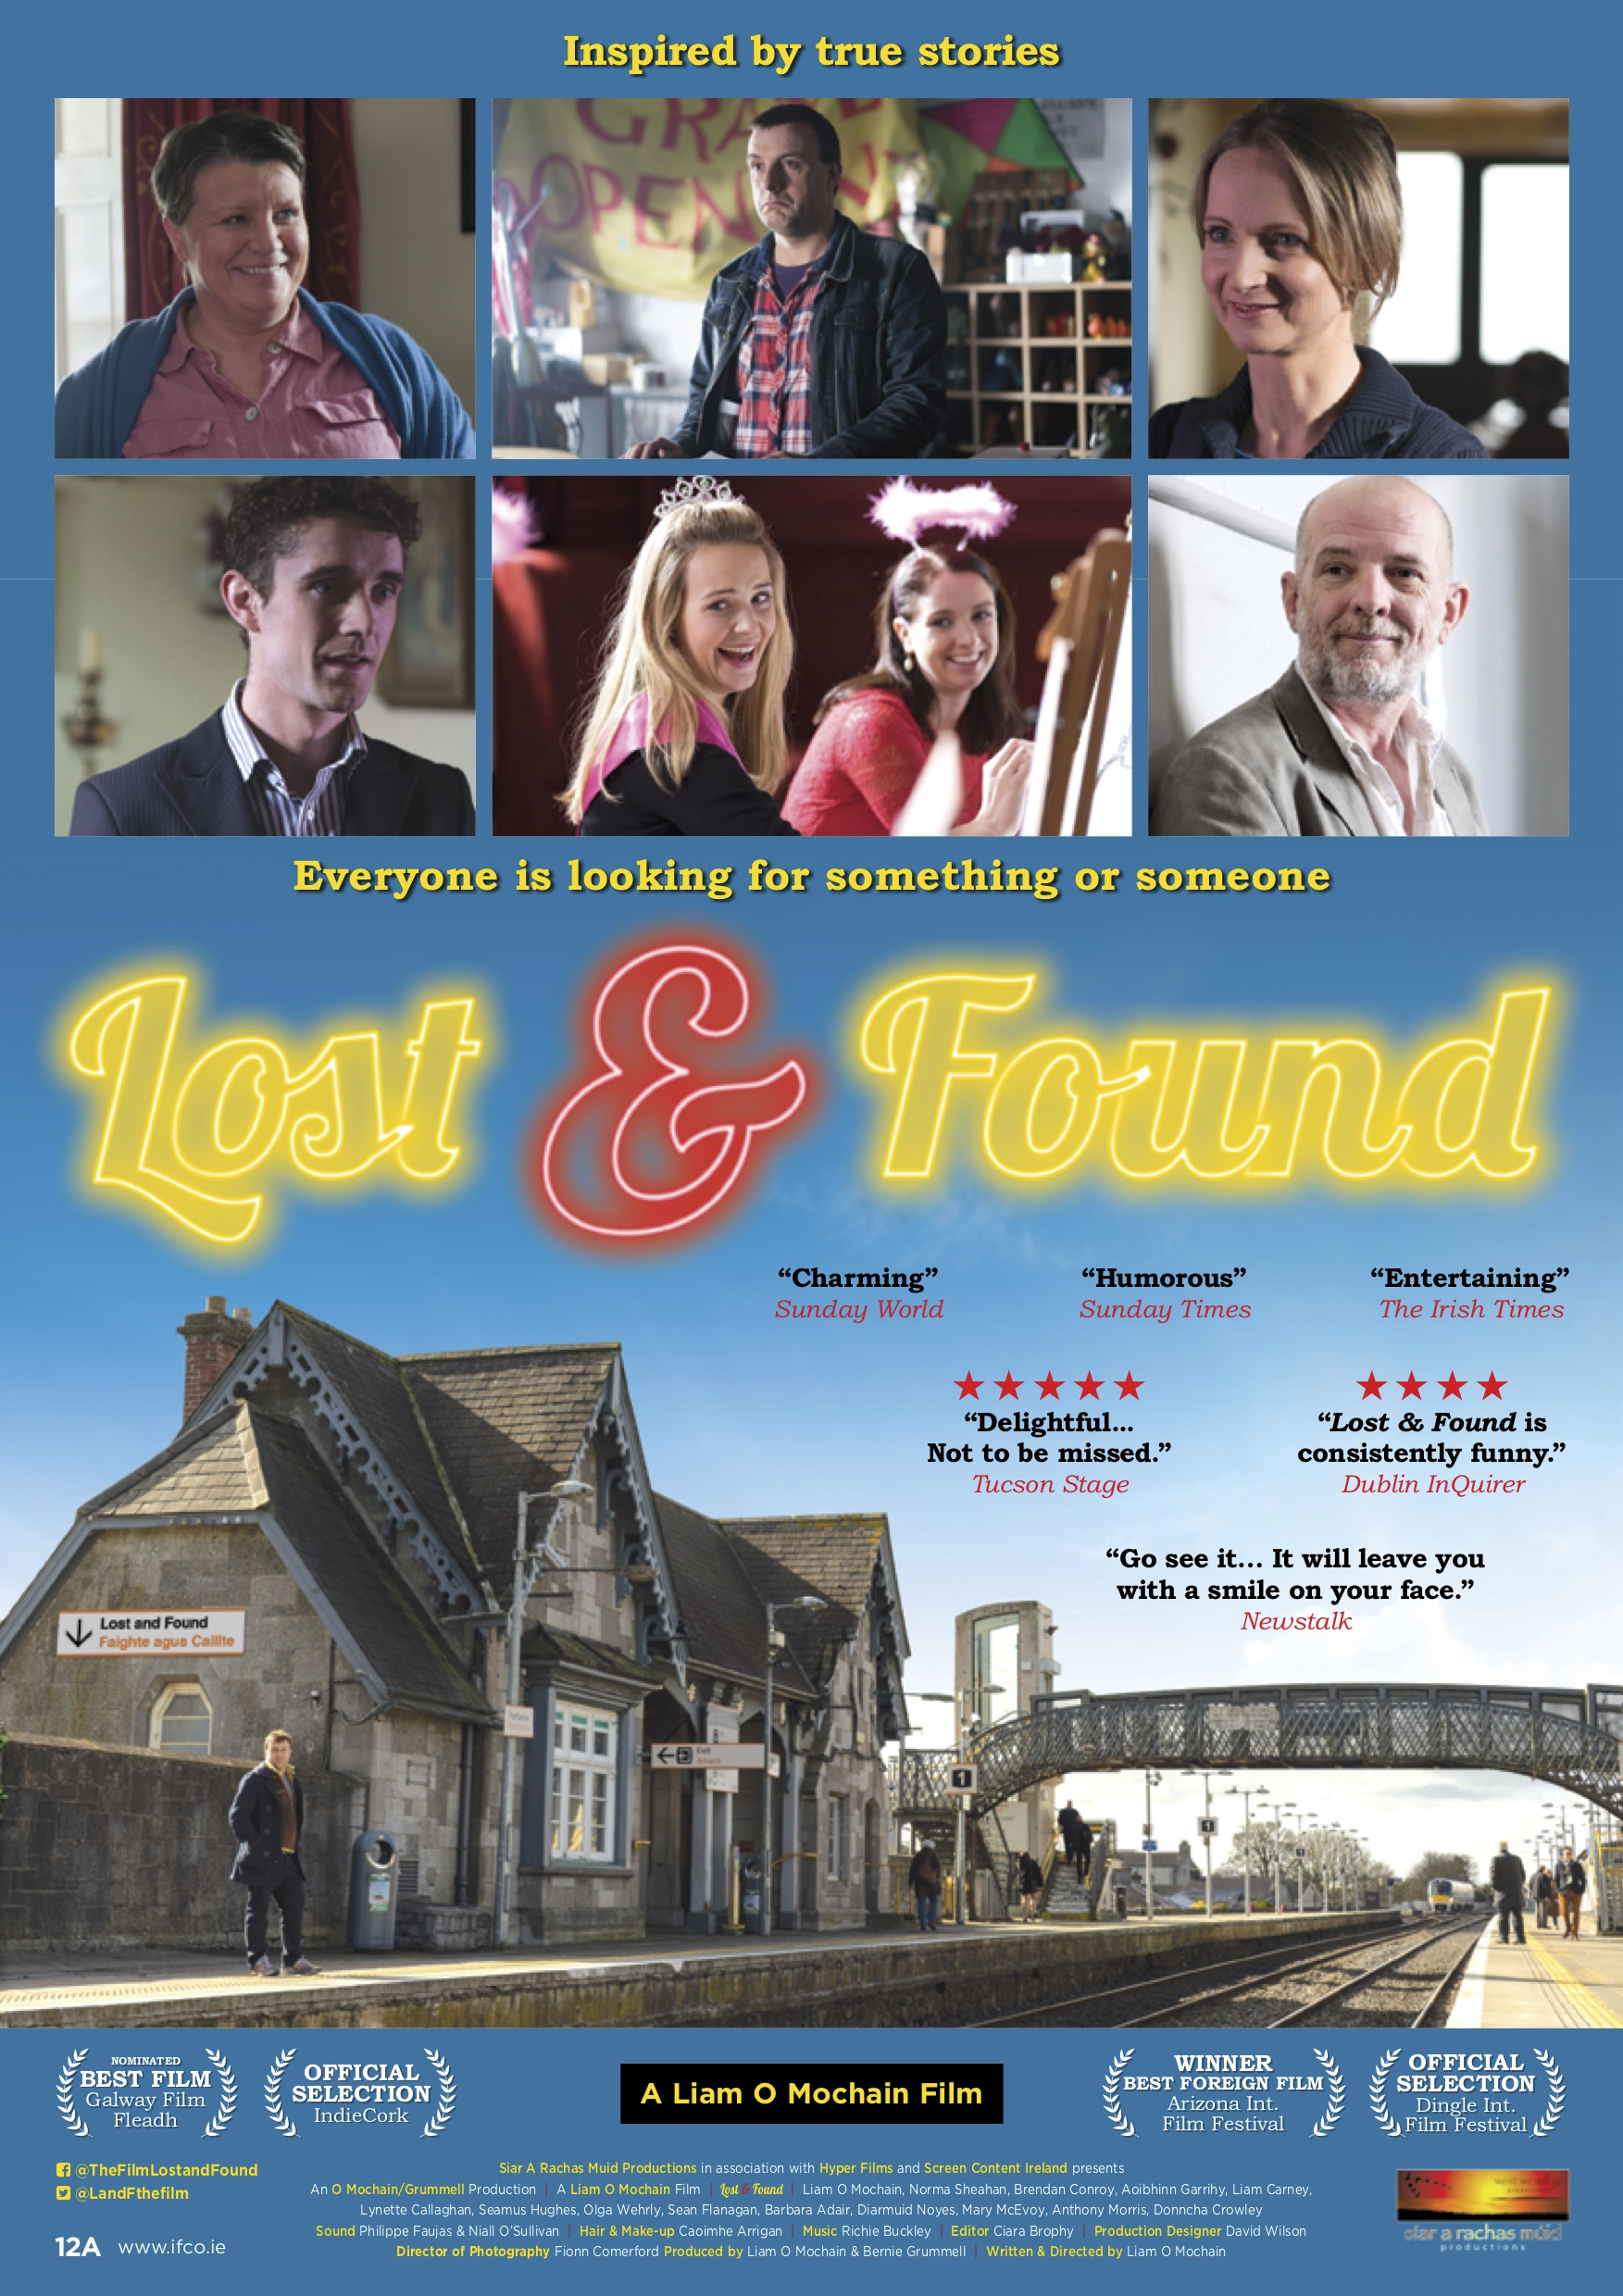 Lost & Found will be screened at the Capital Irish Film Festival, Friday, March 1 at 5 p.m.